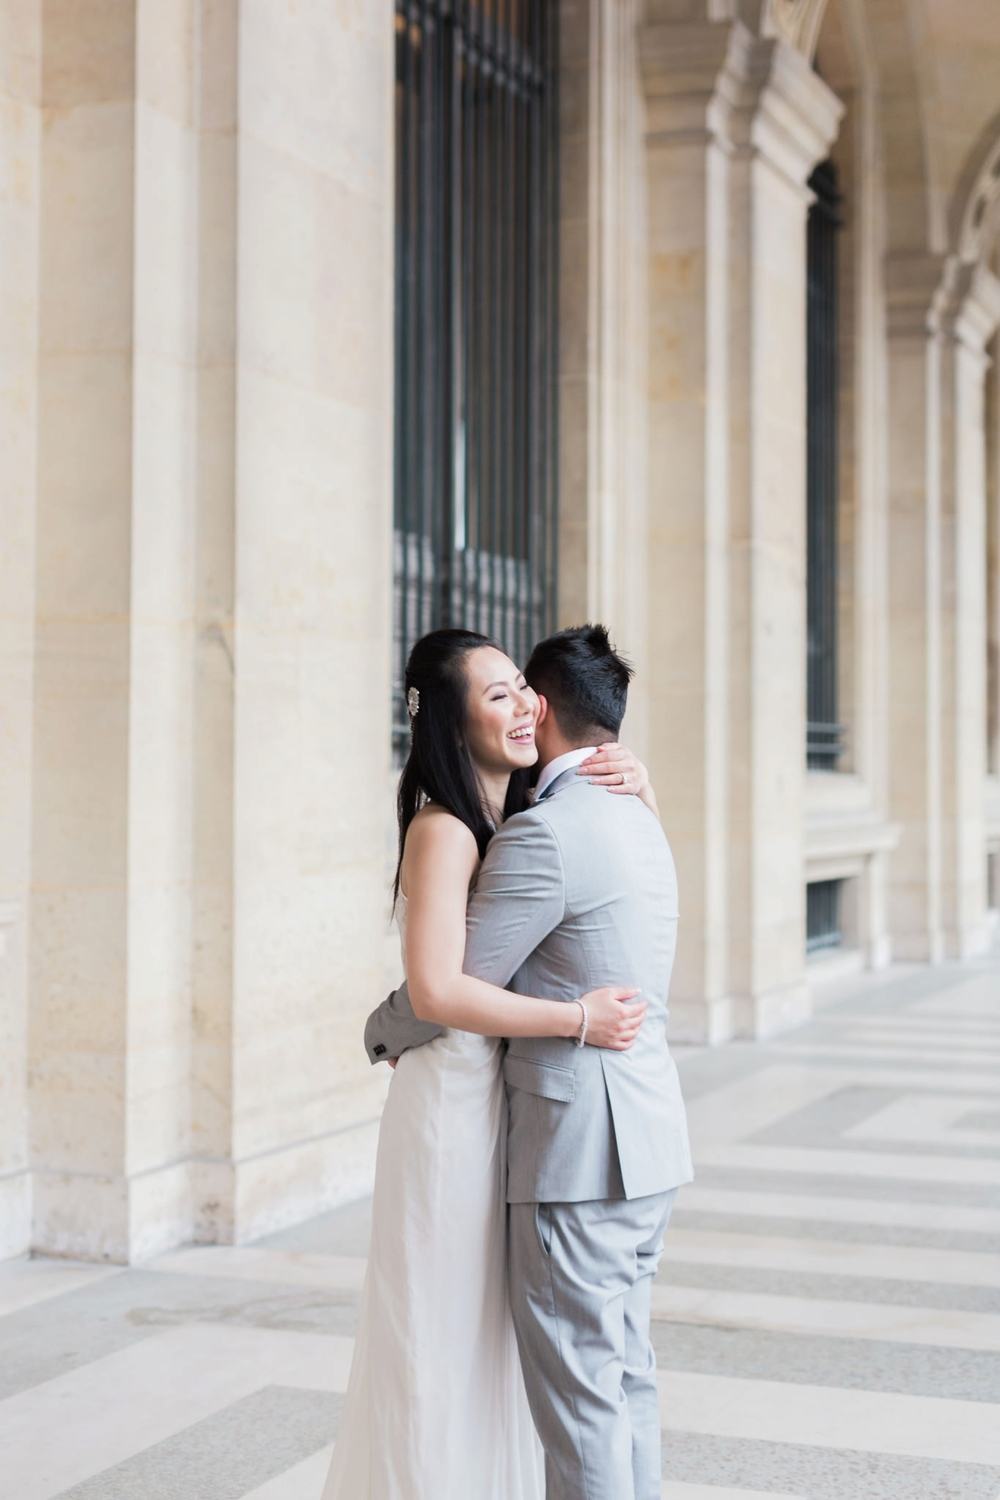 Suzanne_li_photography_paris_engagement_shoot_0004.jpg